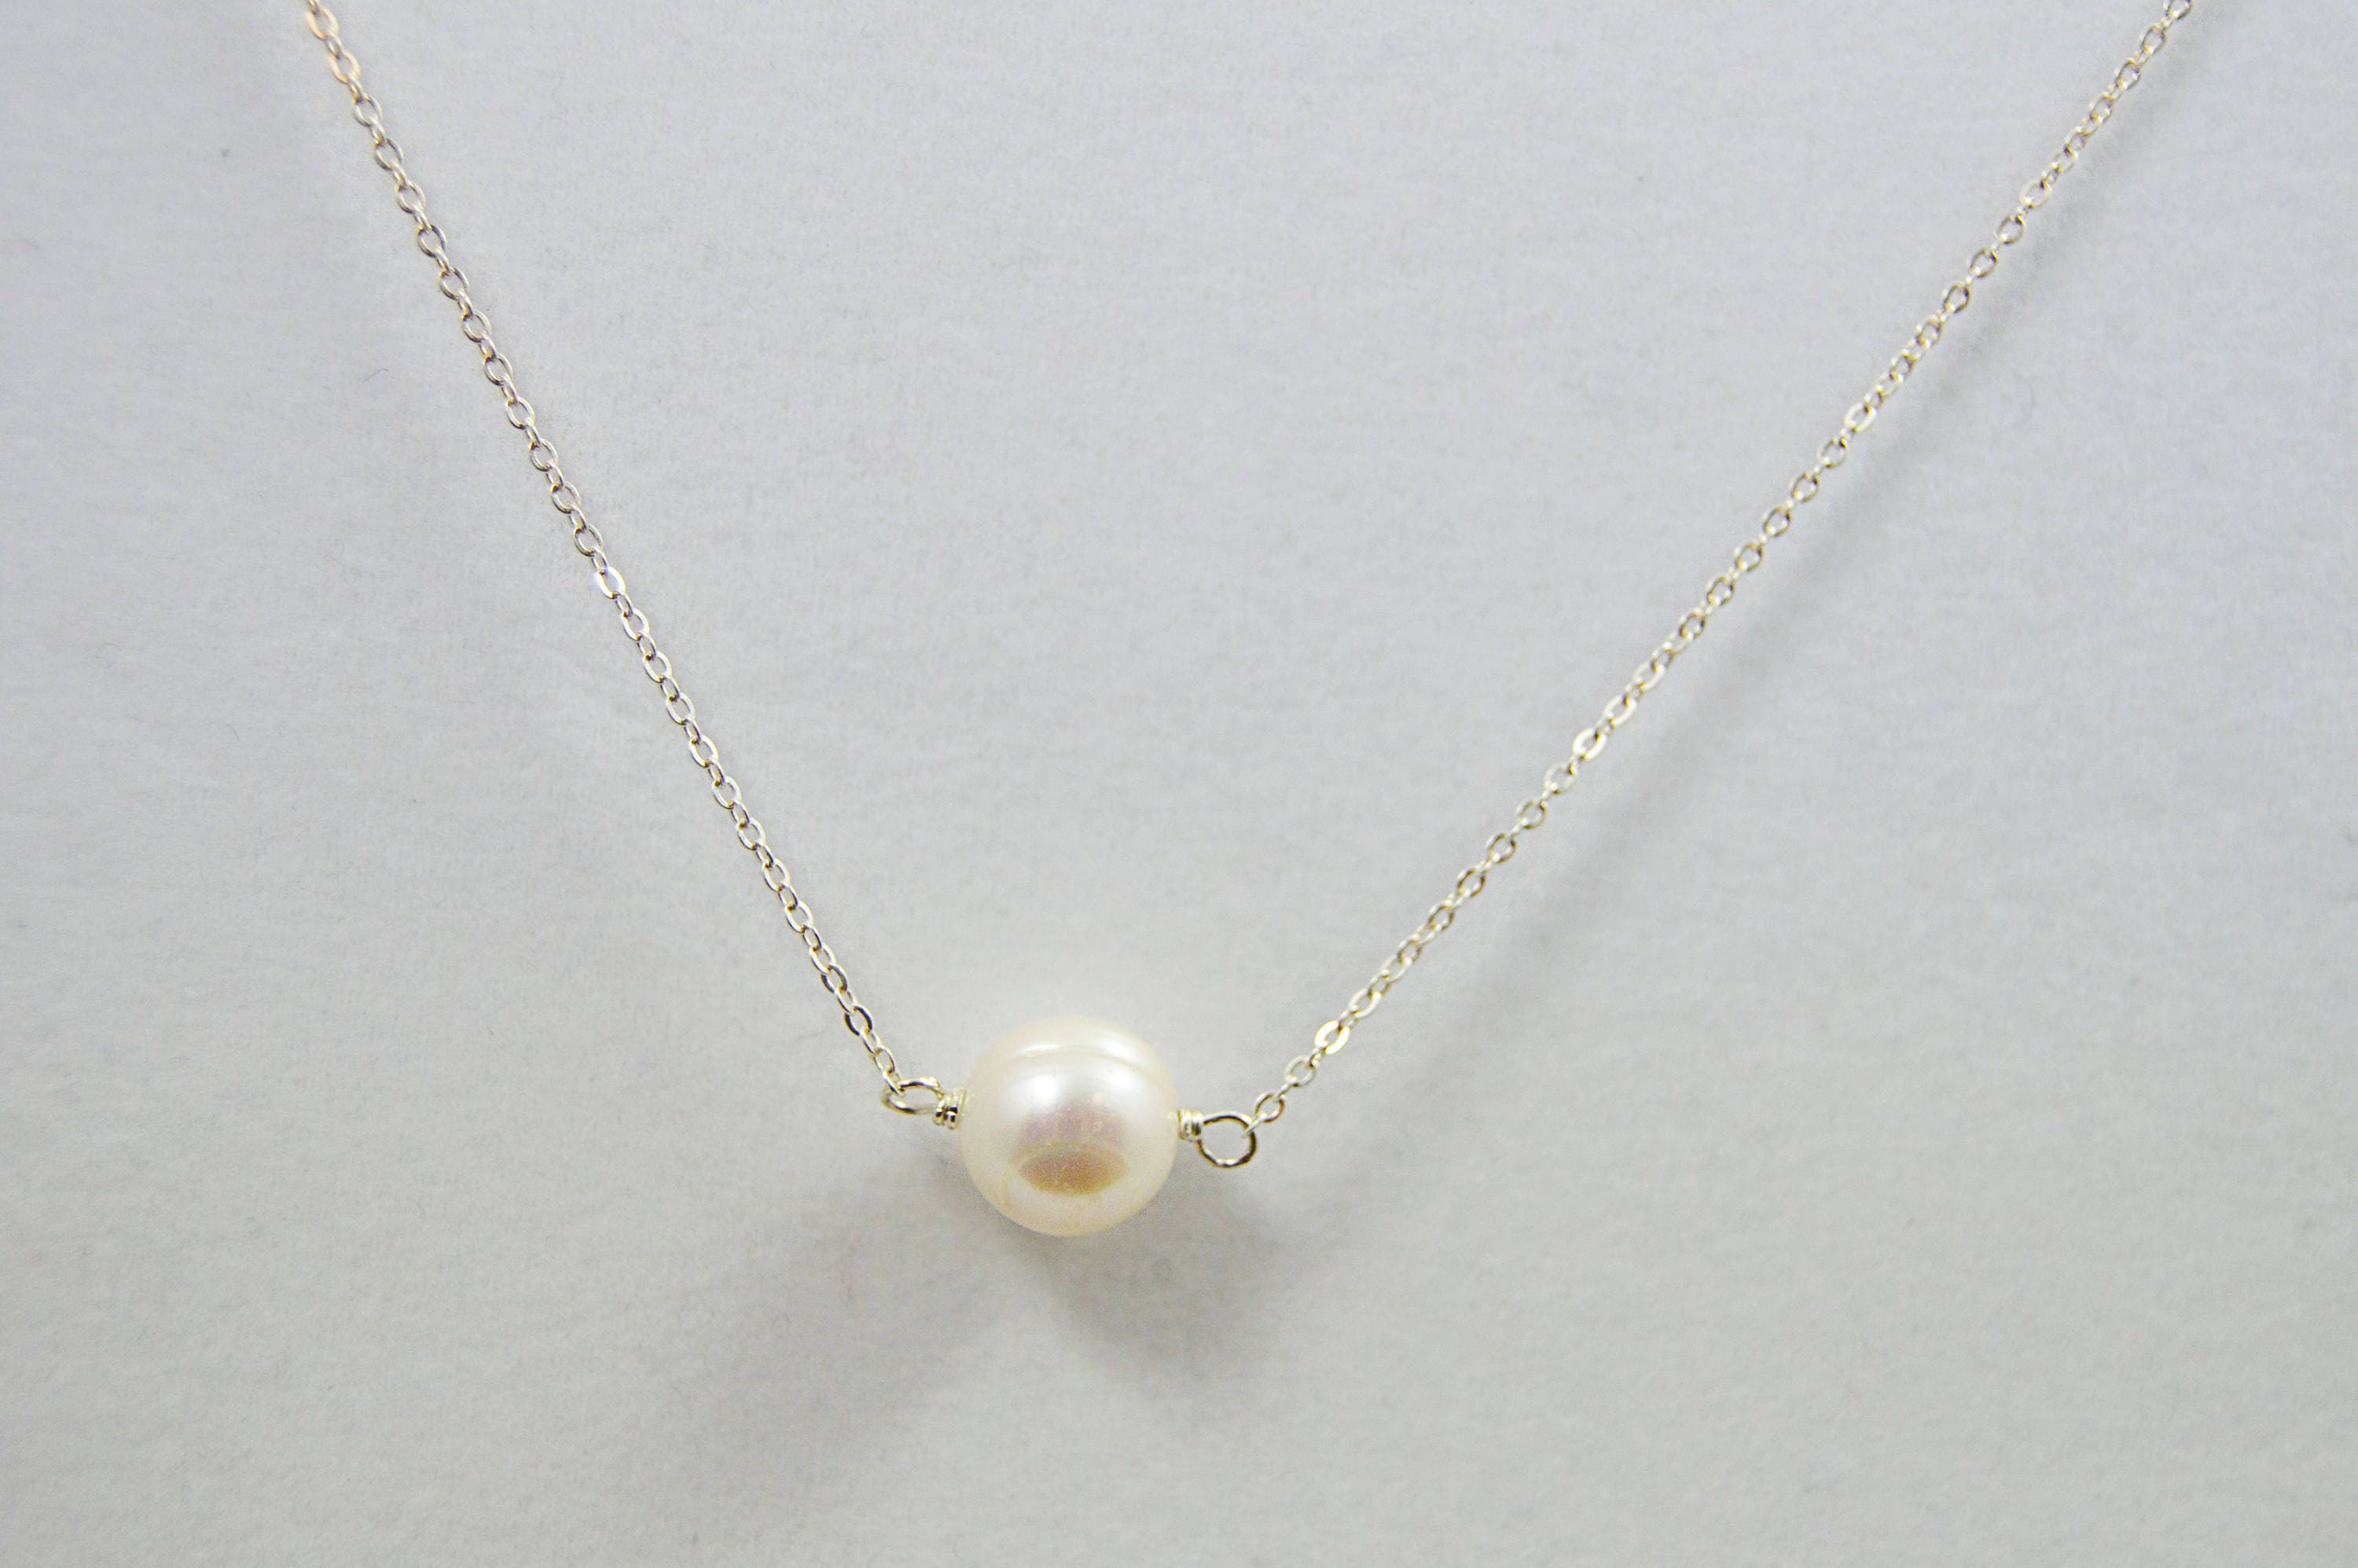 cultured sku sapphires diamond categories pendant gold white necklaces tags jewellery product pearl and single pearls sapphire